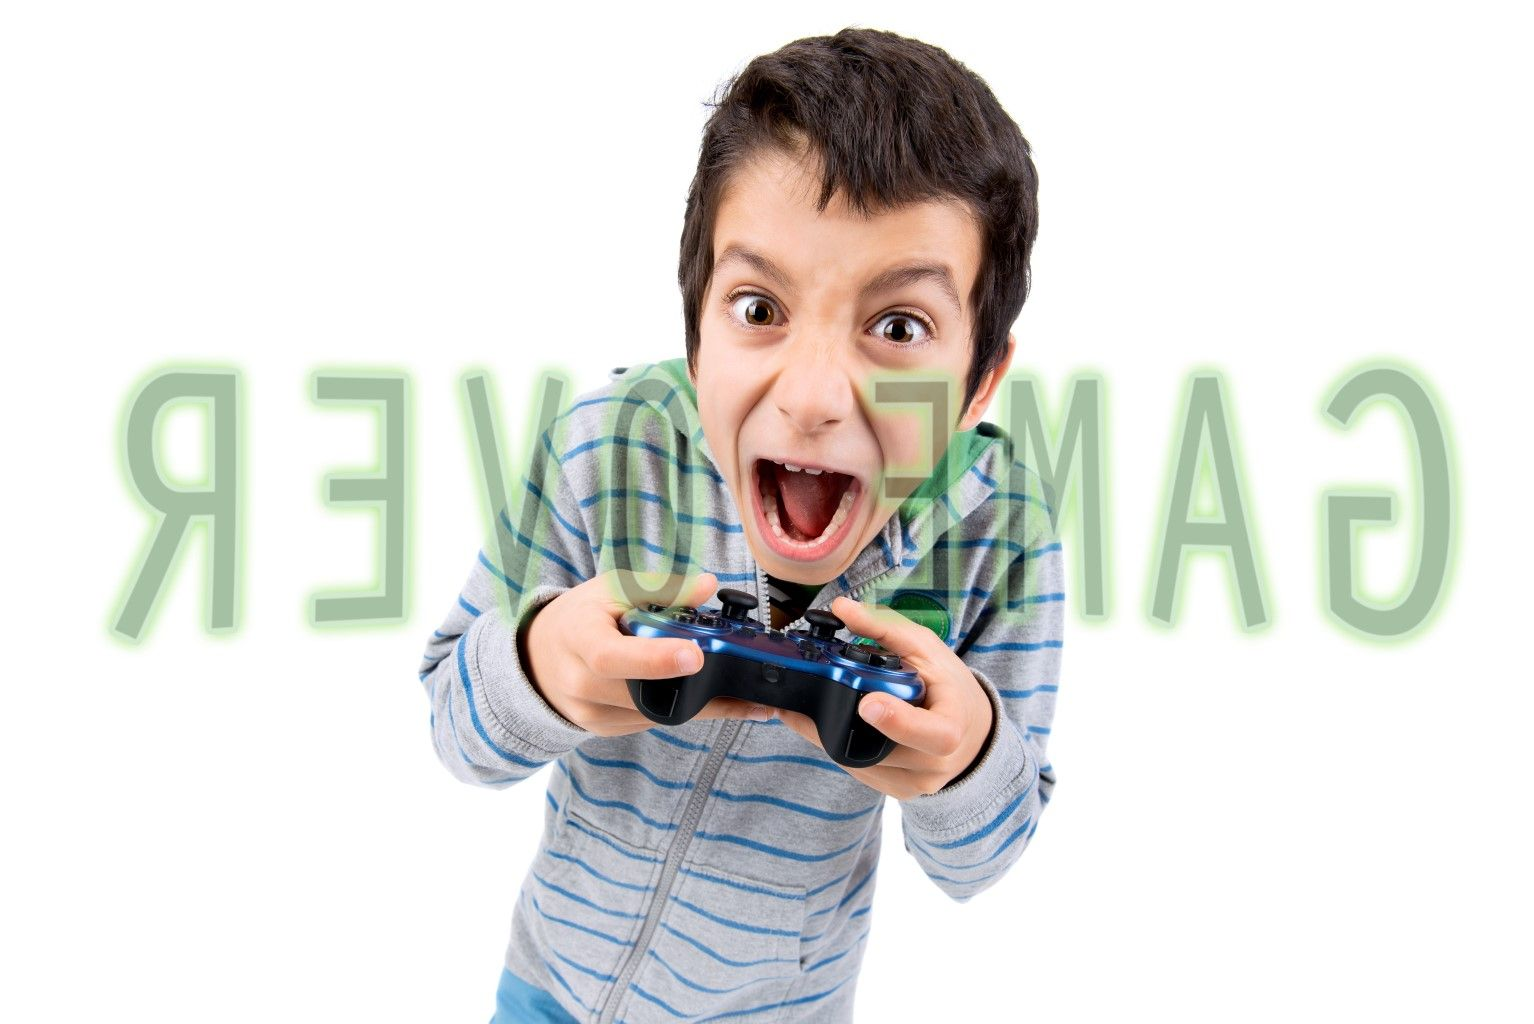 Boy Holding Video Controller GAME OVER LG